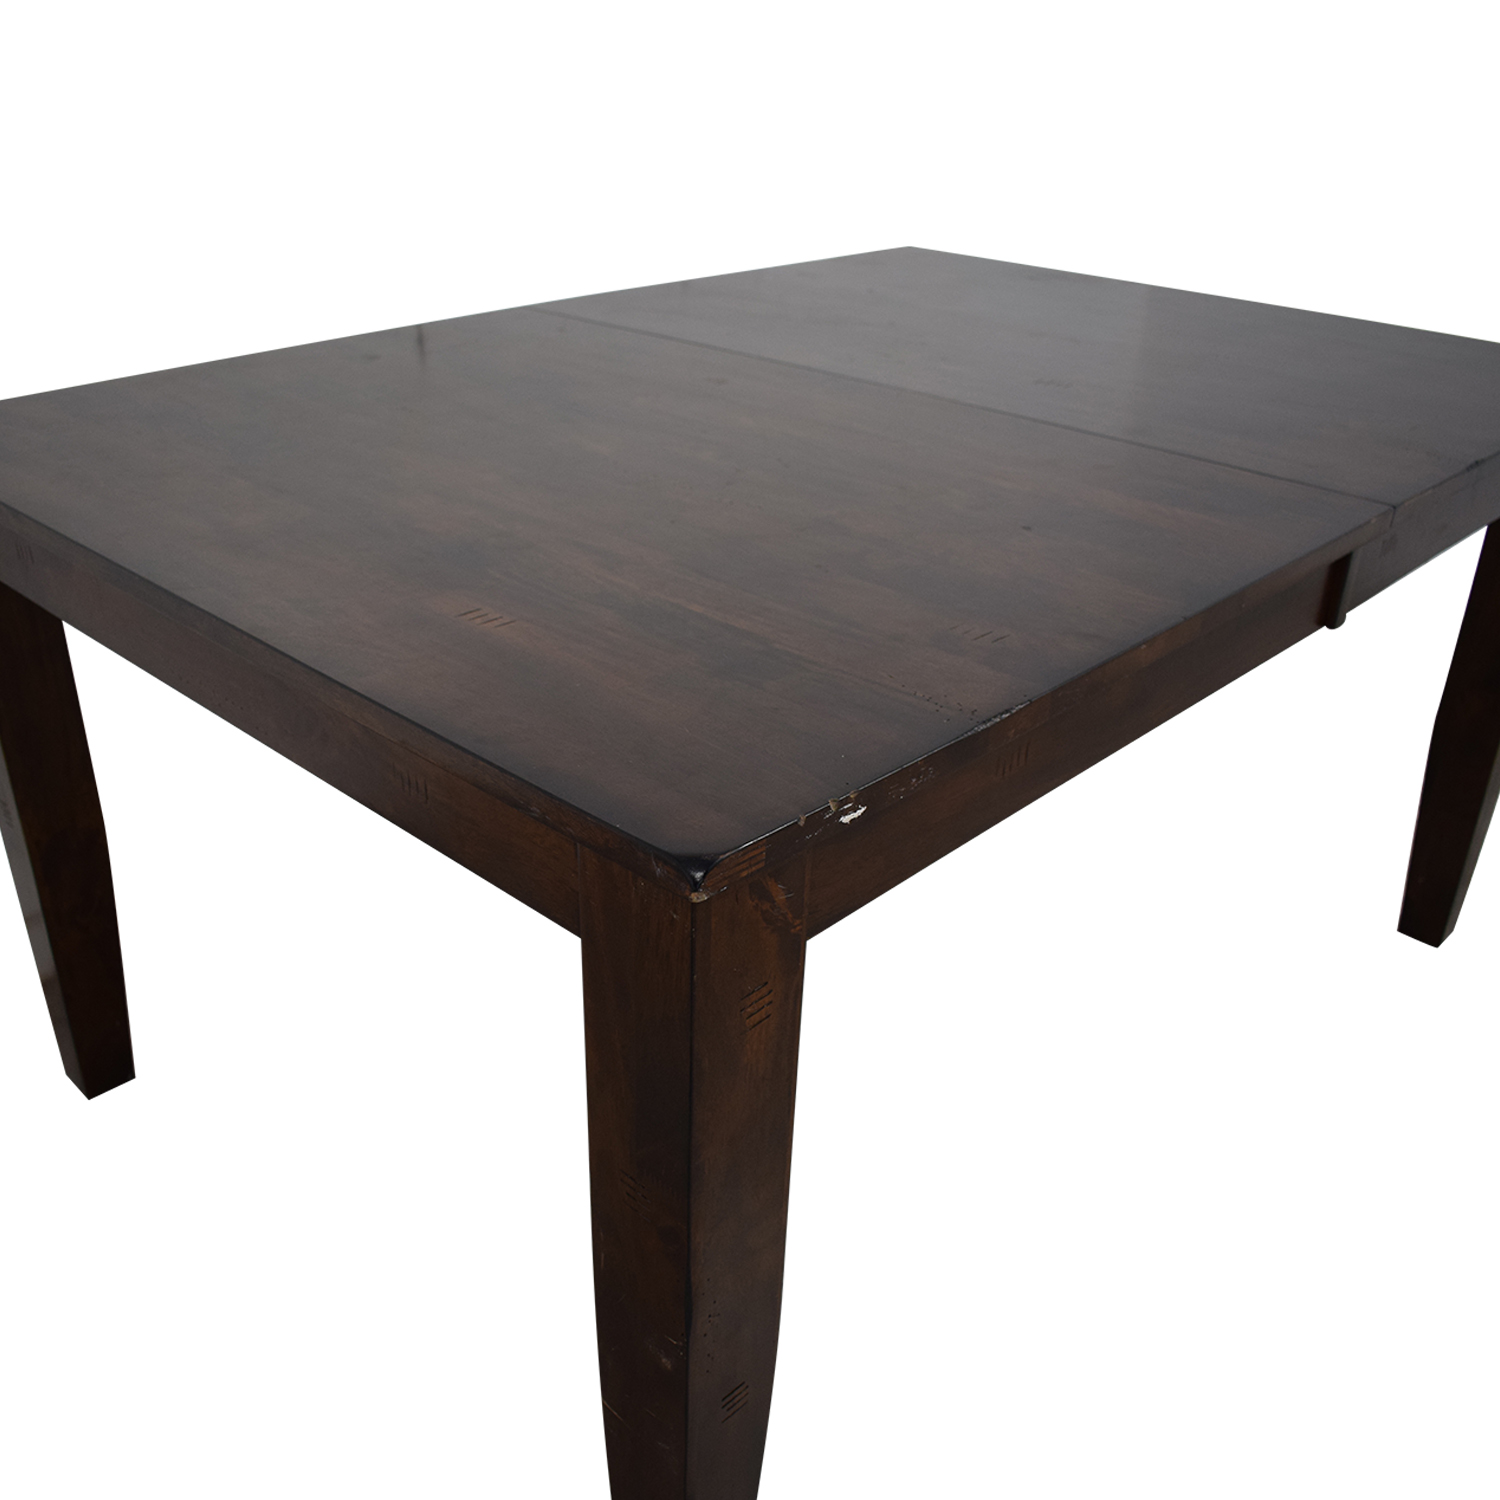 Raymour & Flanigan Raymour & Flanigan Kona Dining Table with Leaf